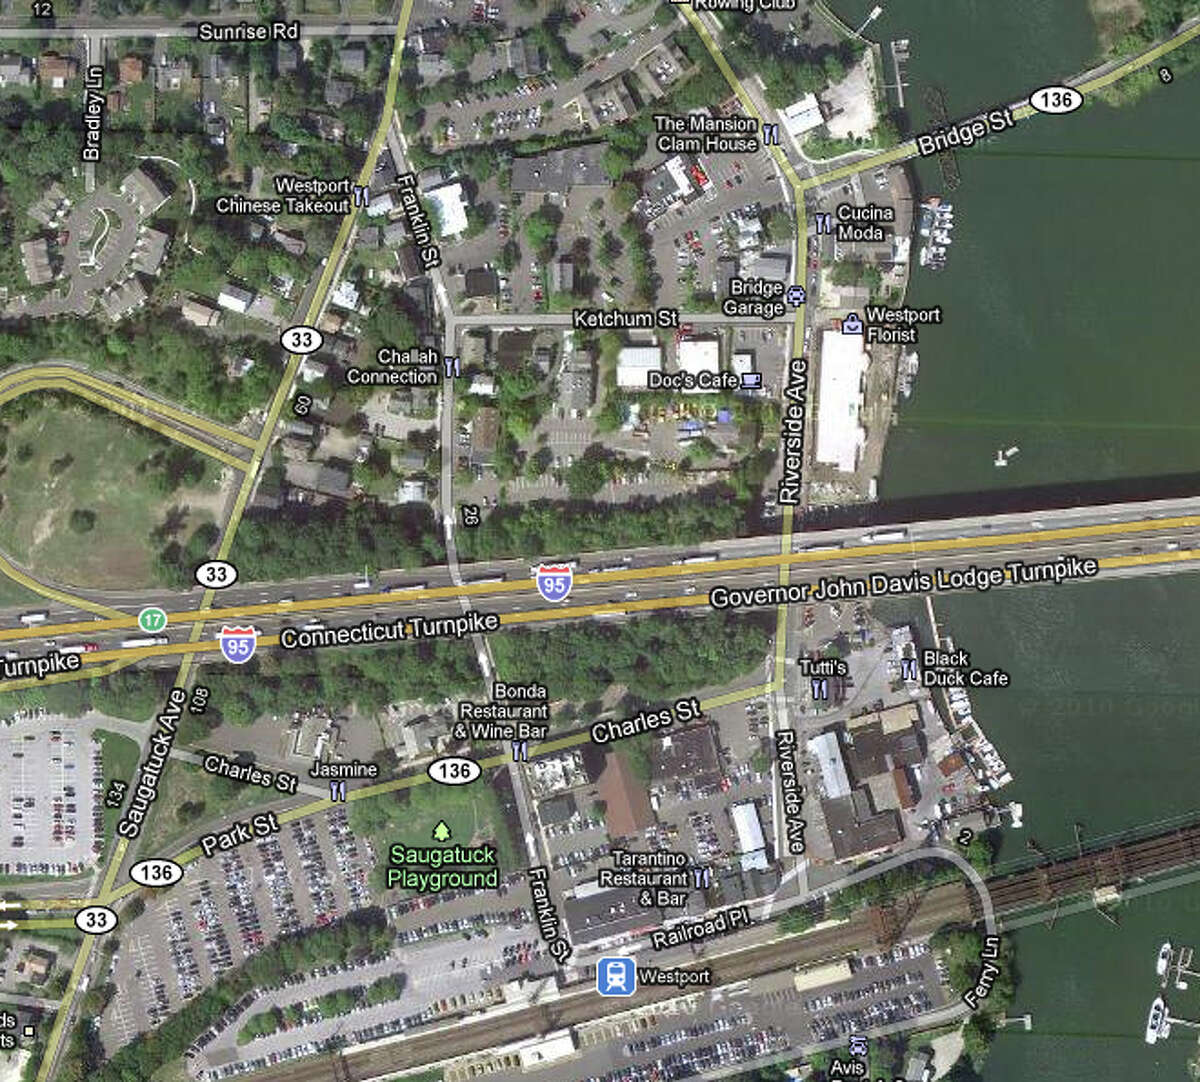 A satellite view of Westport's Saugatuck section from a Google map.